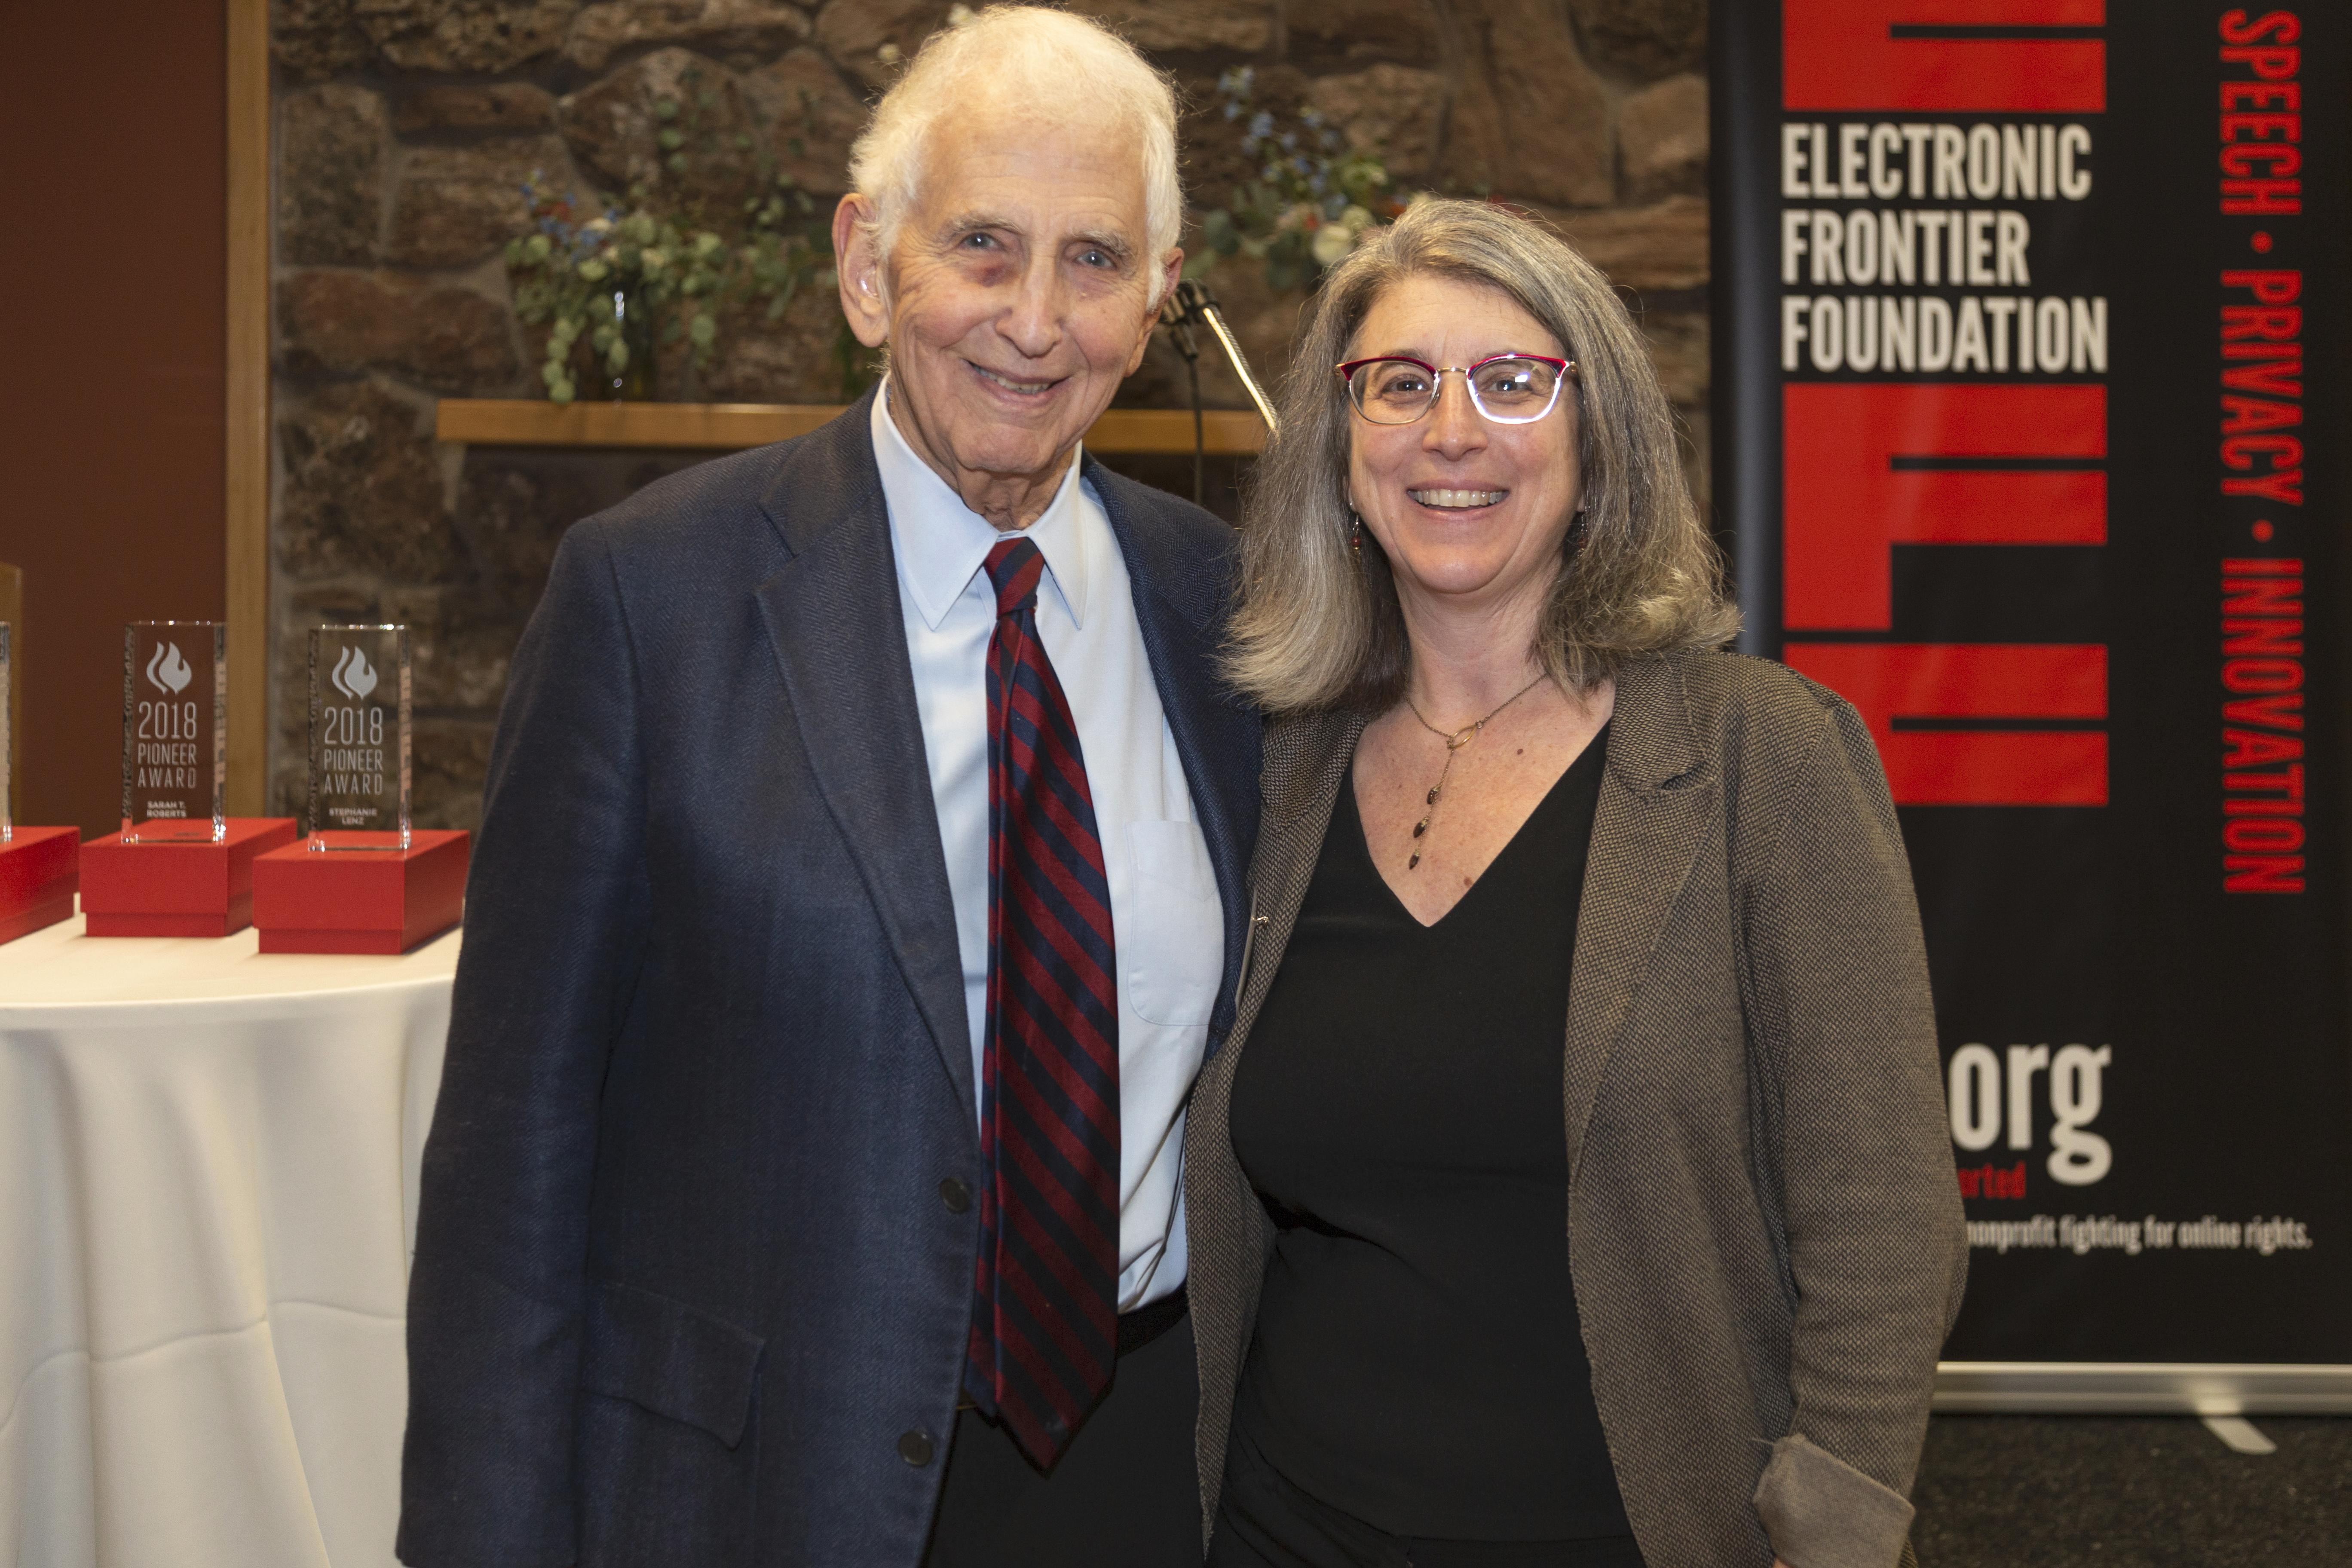 Daniel Ellsberg, renound whistleblower and 2018 Pioneer Award Keynote, poses with Executive Director Cindy Cohn